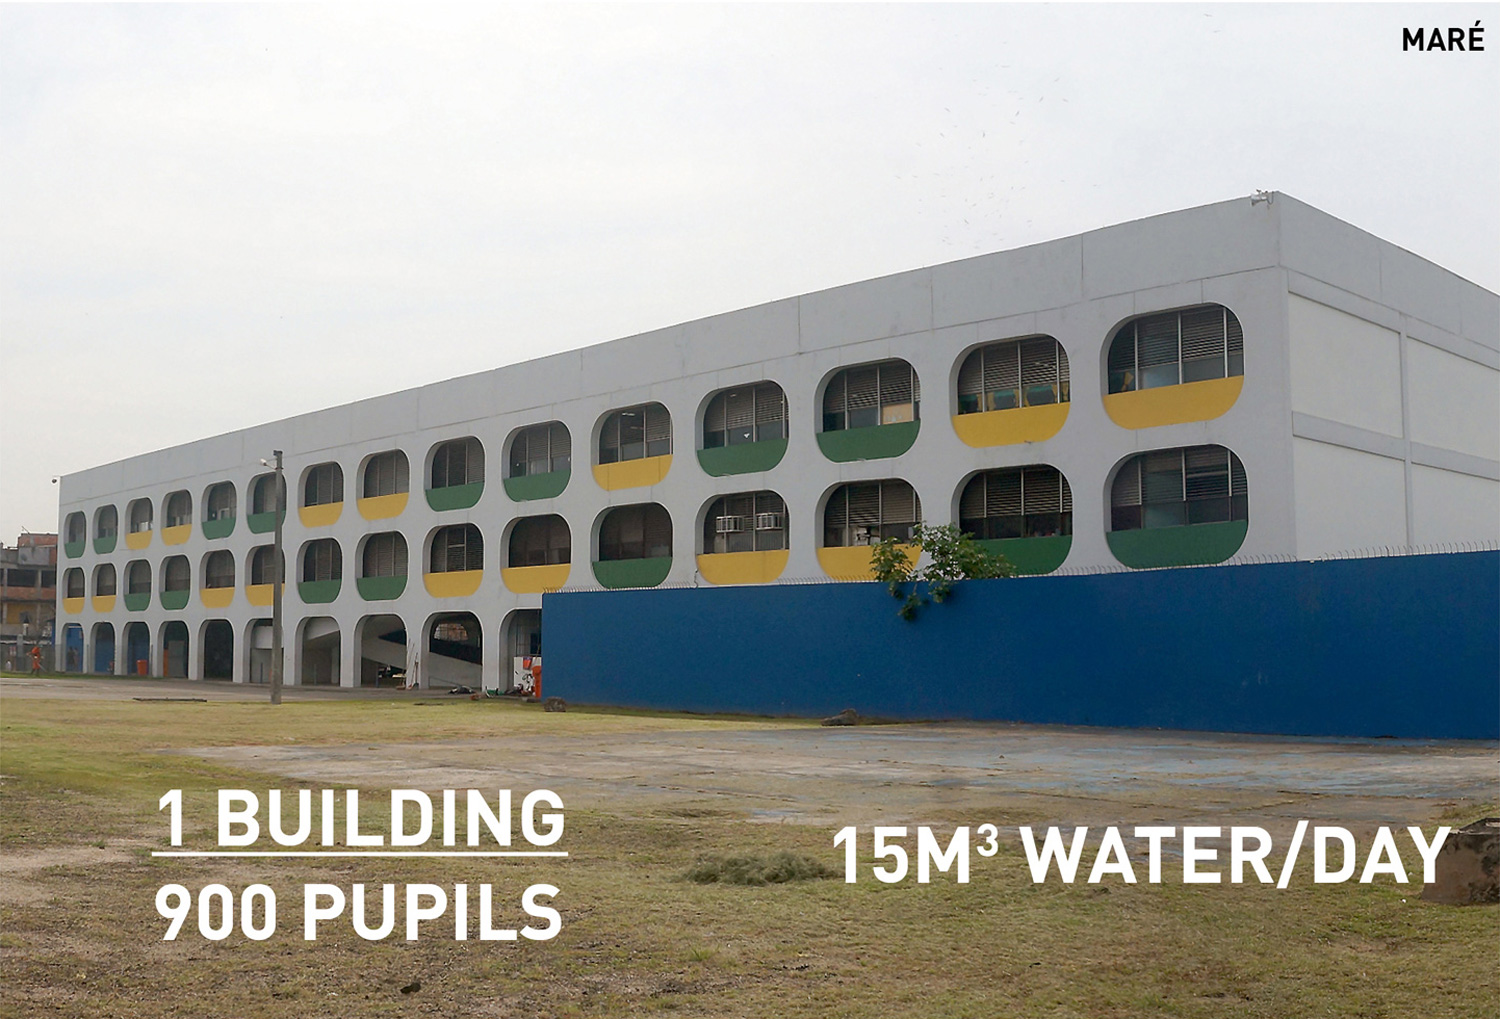 Public buildings such as schools offer a unique opportunity to explore the potential of the system in an institutional and educational setting.